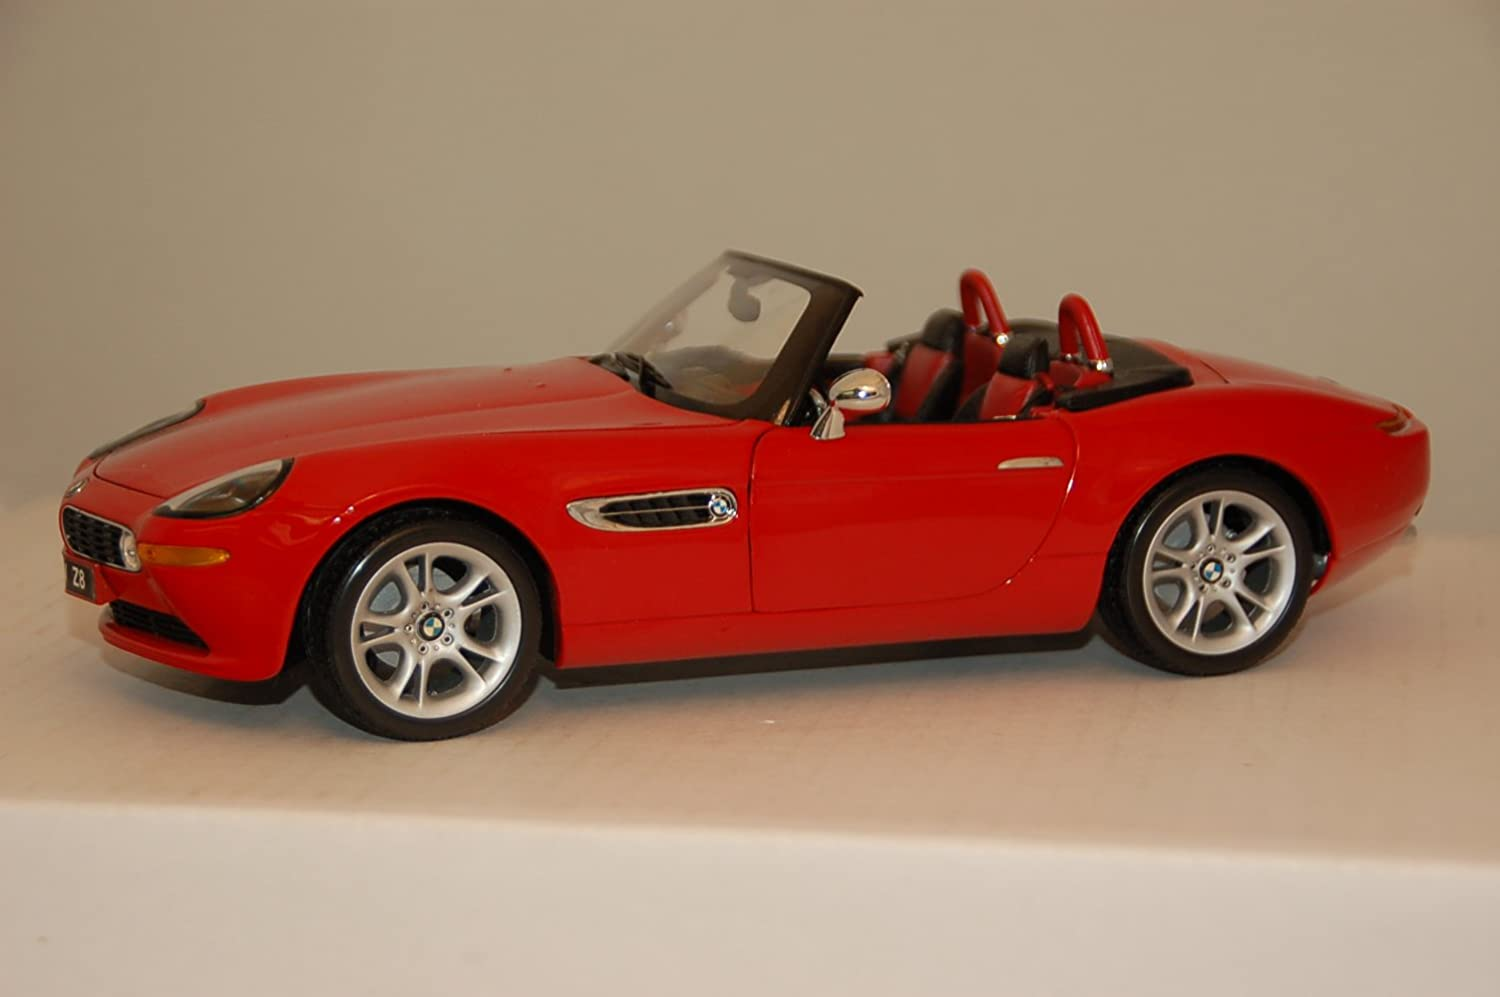 Kyosho 1/18 Scale Diecast - 08511R BMW Z8 Roadster - Red Model car B003CHR2K4